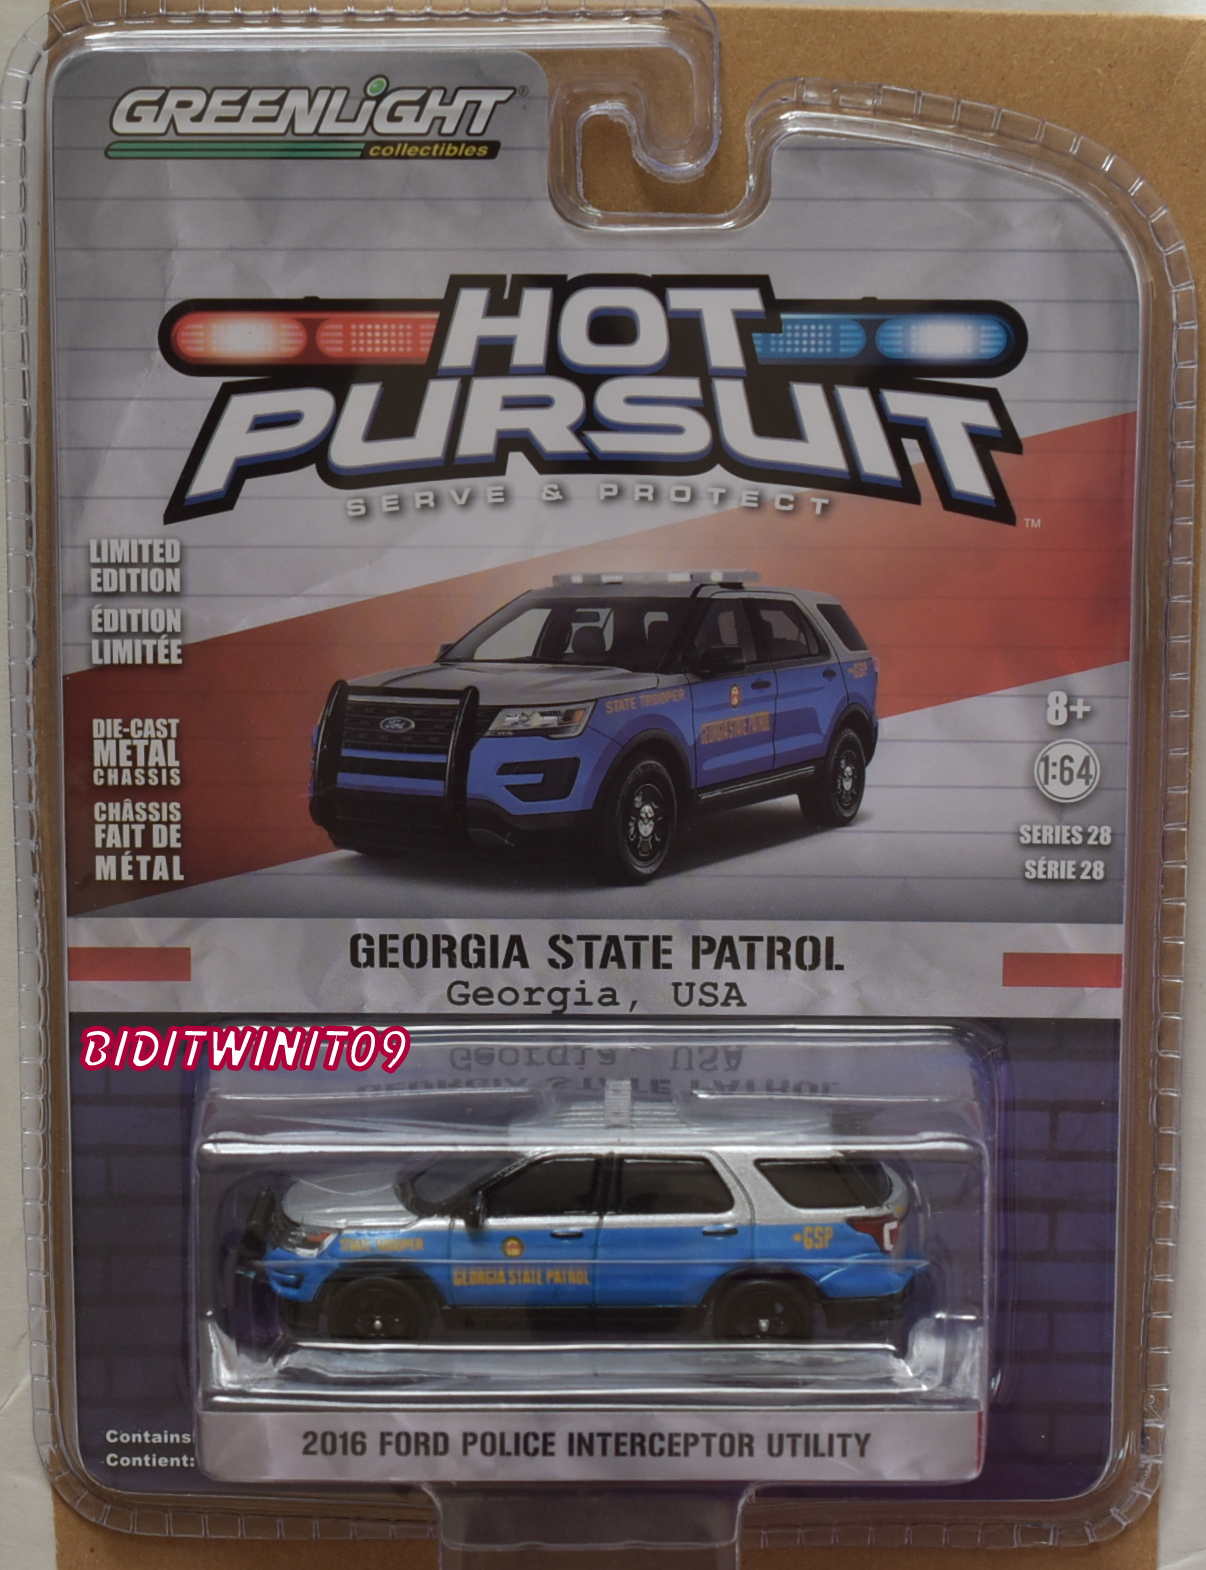 GREENLIGHT 2018 HOT PURSUIT SERIES 28 2016 FORD POLICE INTERCEPTOR UTILITY